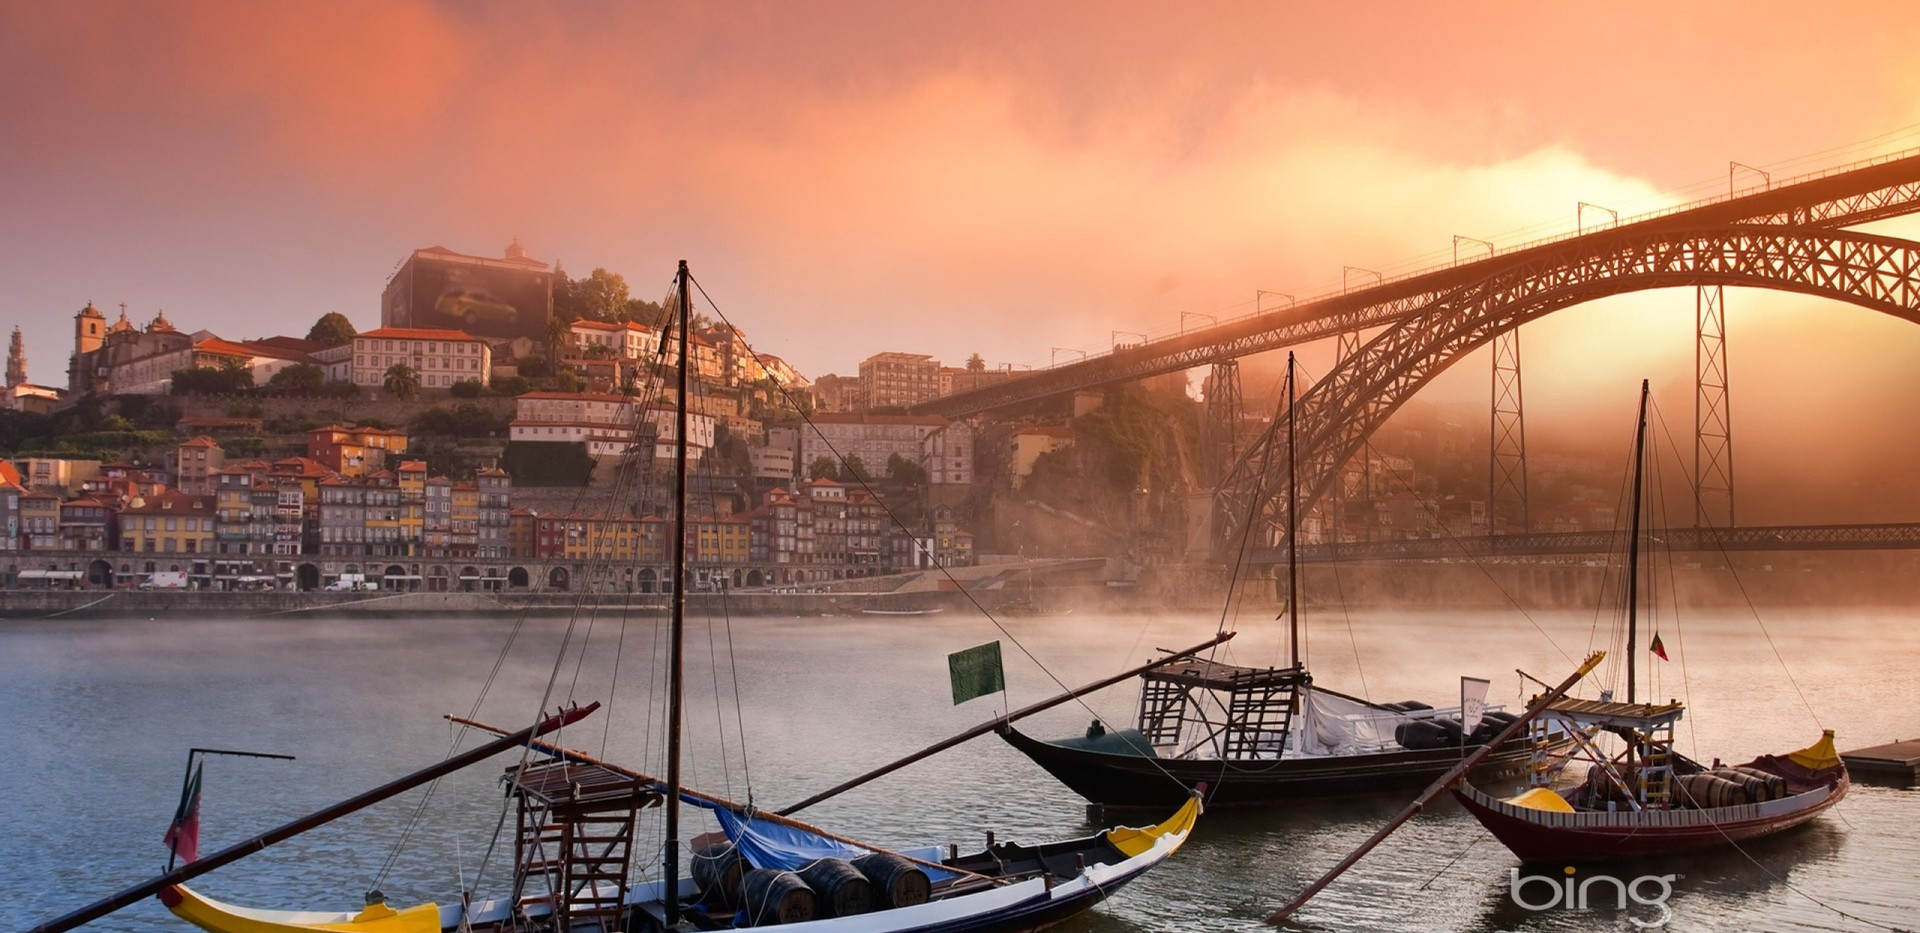 Boats in Douro River